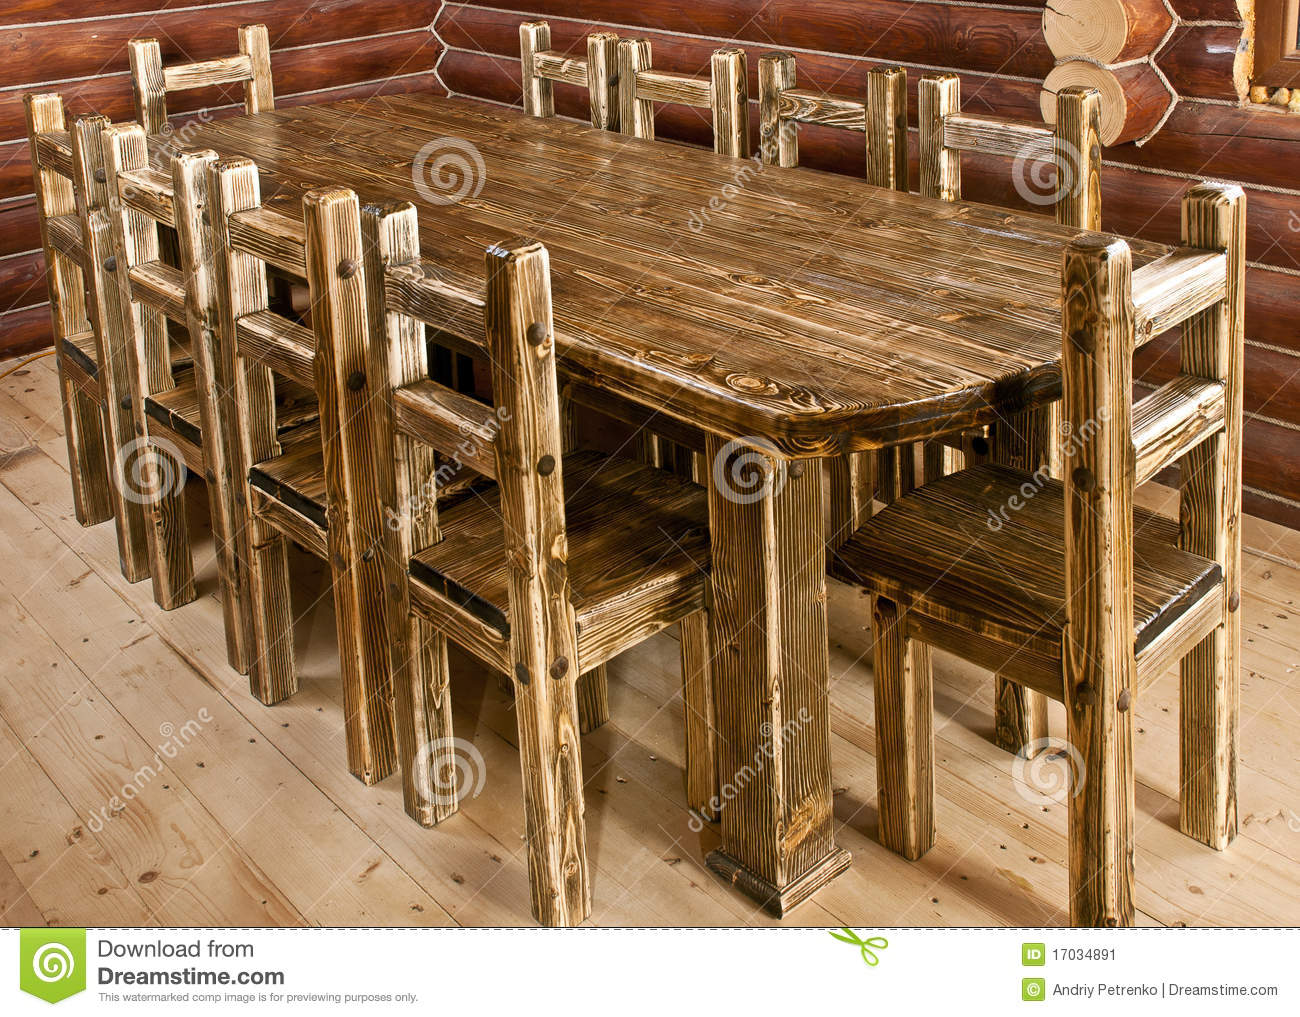 stock image handmade large kitchen table image large kitchen tables Handmade large kitchen table